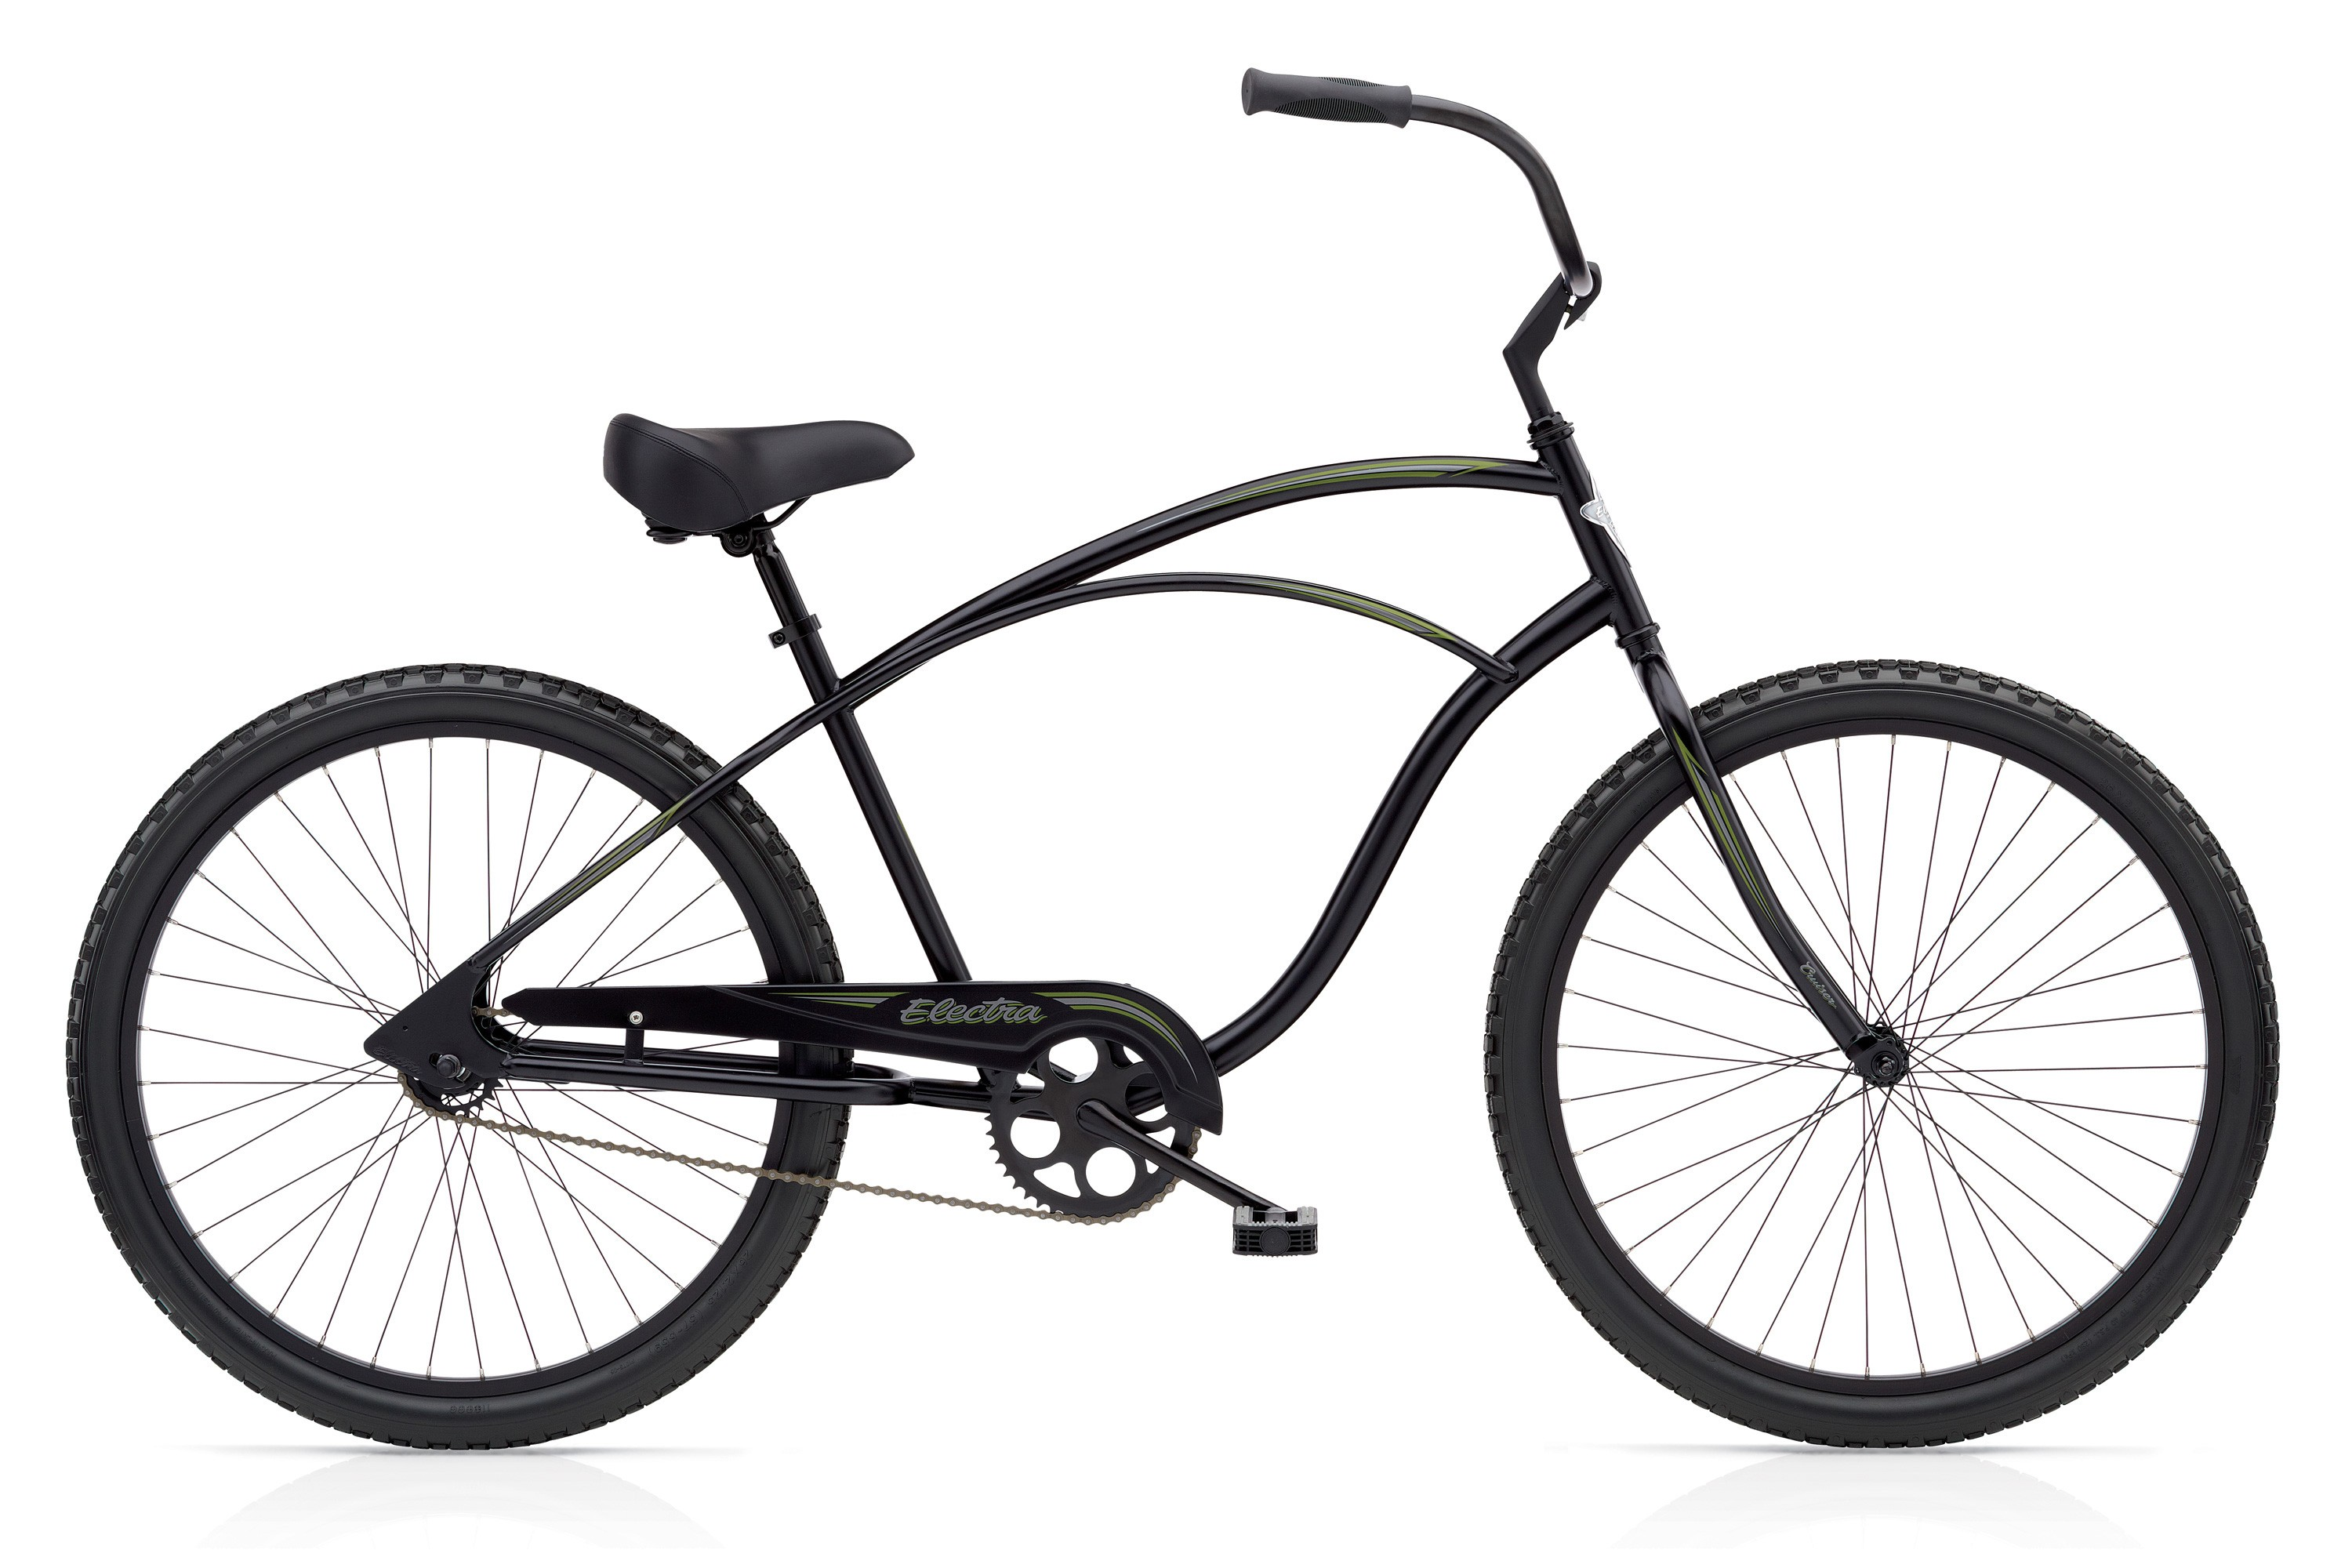 Bicykel ELECTRA Cruiser 1 Men's Black 2018